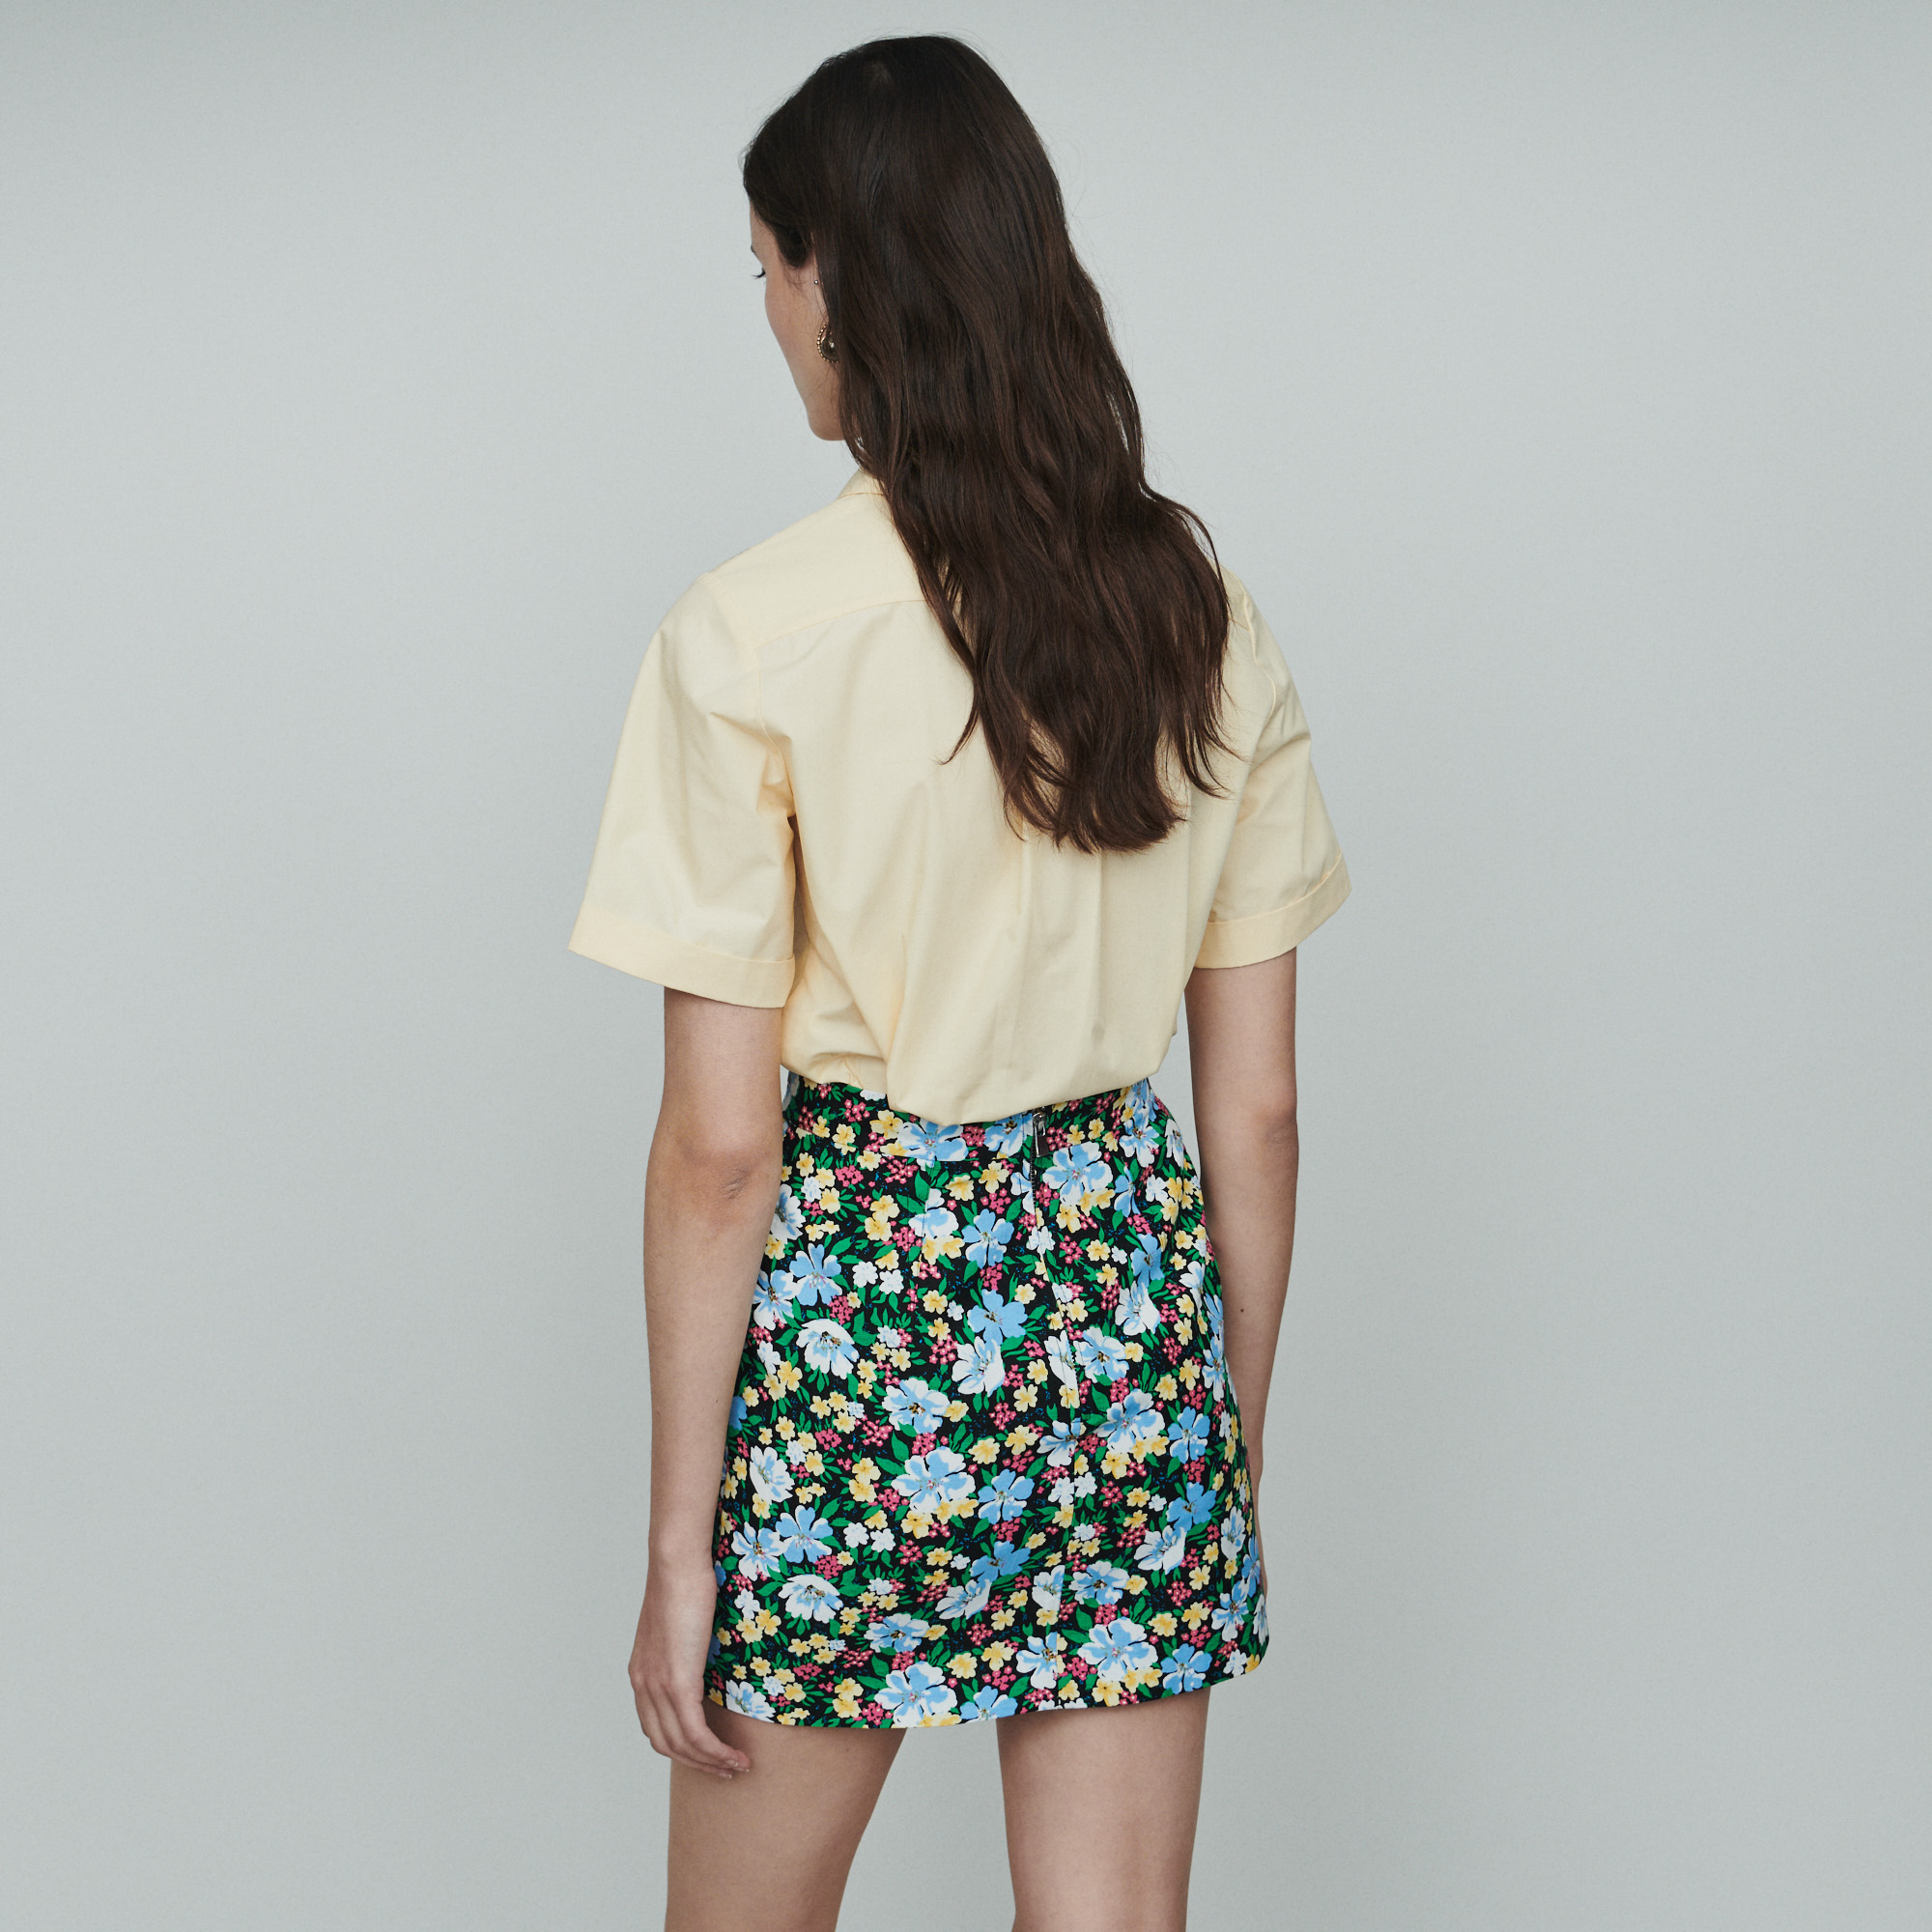 Short skirt with floral print - Print